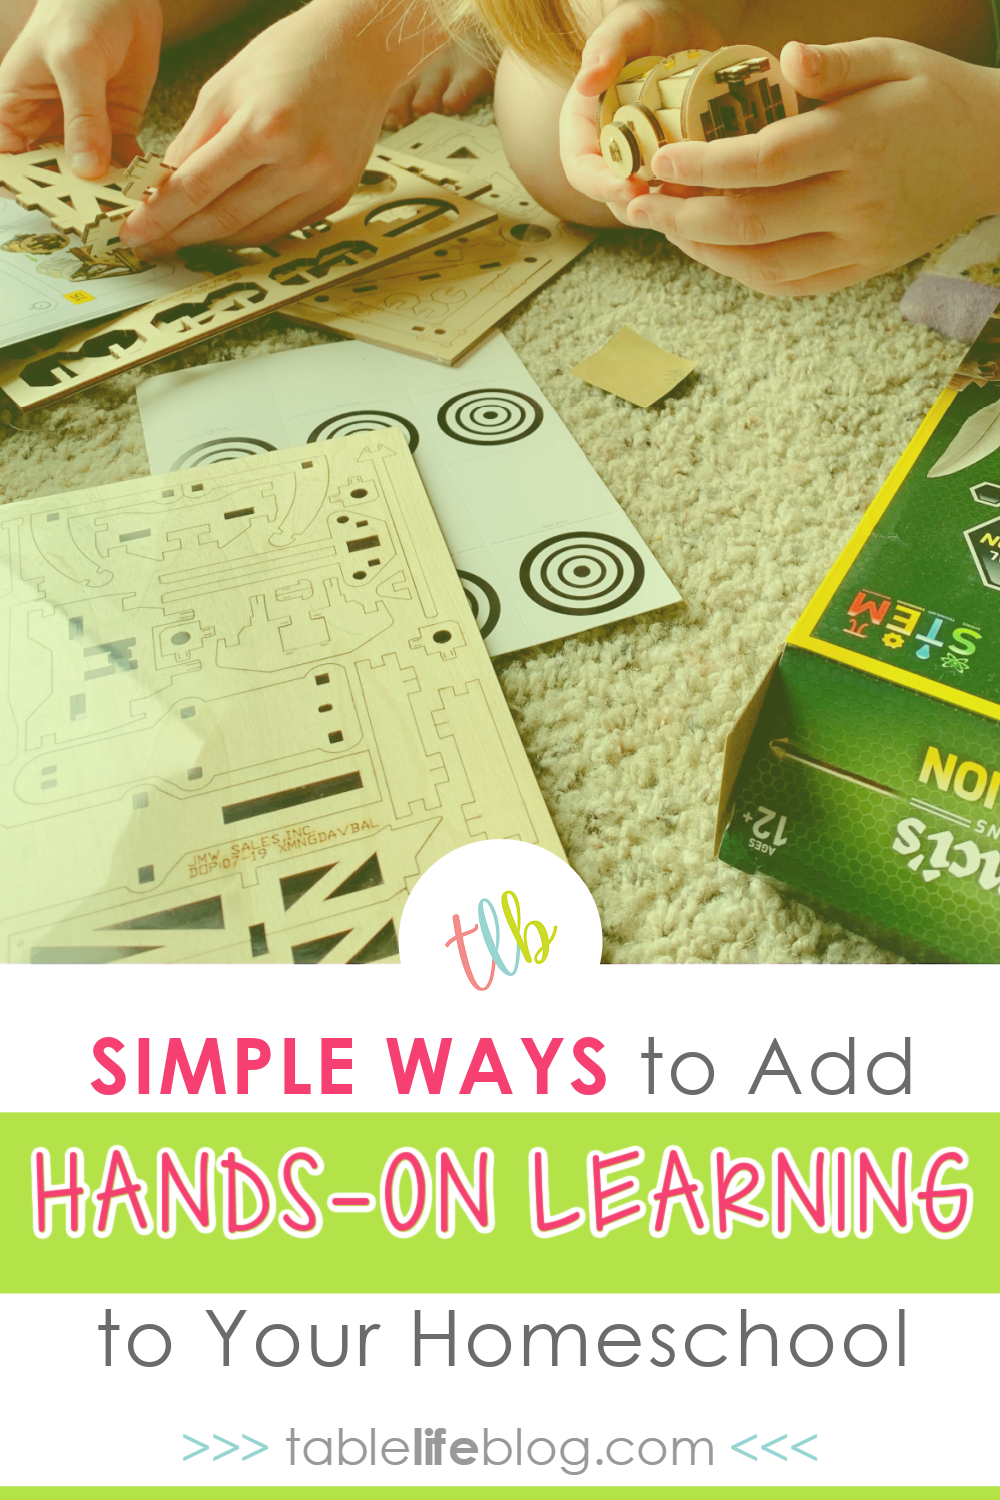 Need help adding hands-on learning to your homeschool routine? These 3 easy ways can help you make it a regular part of your days.